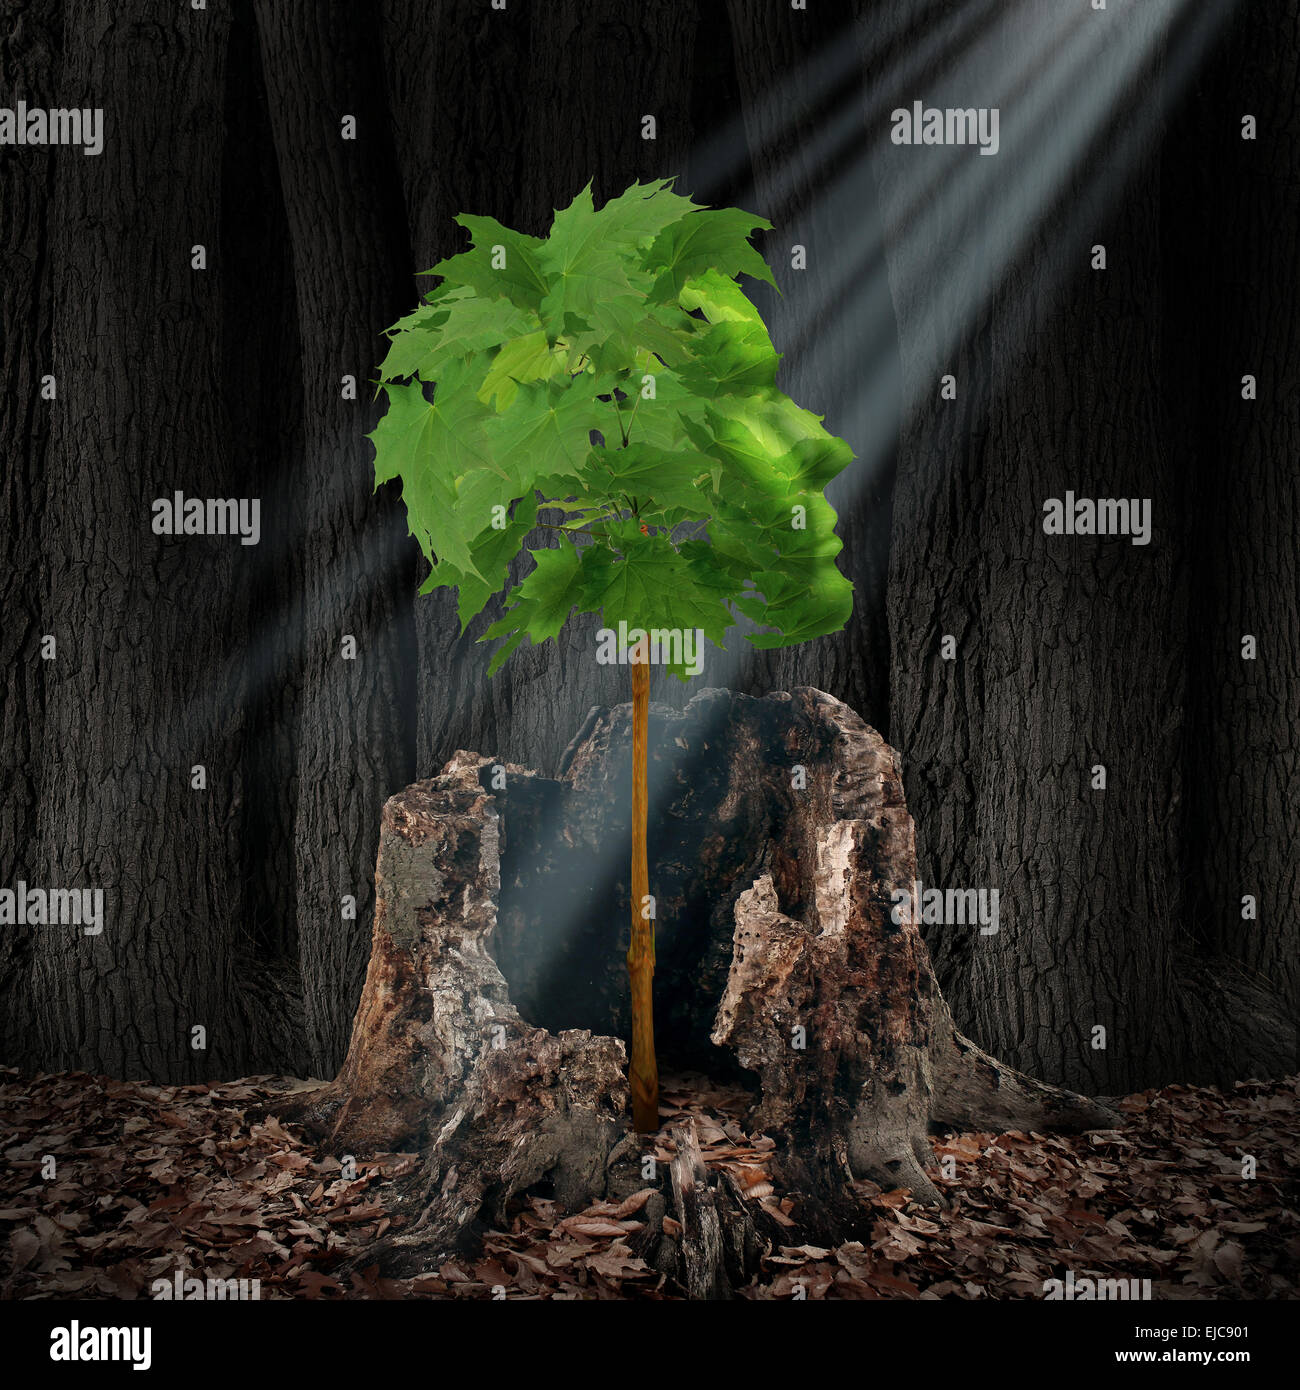 Life renewal and recovery concept as a green leaf tree shaped as a human head growing out of an old dead stump as - Stock Image